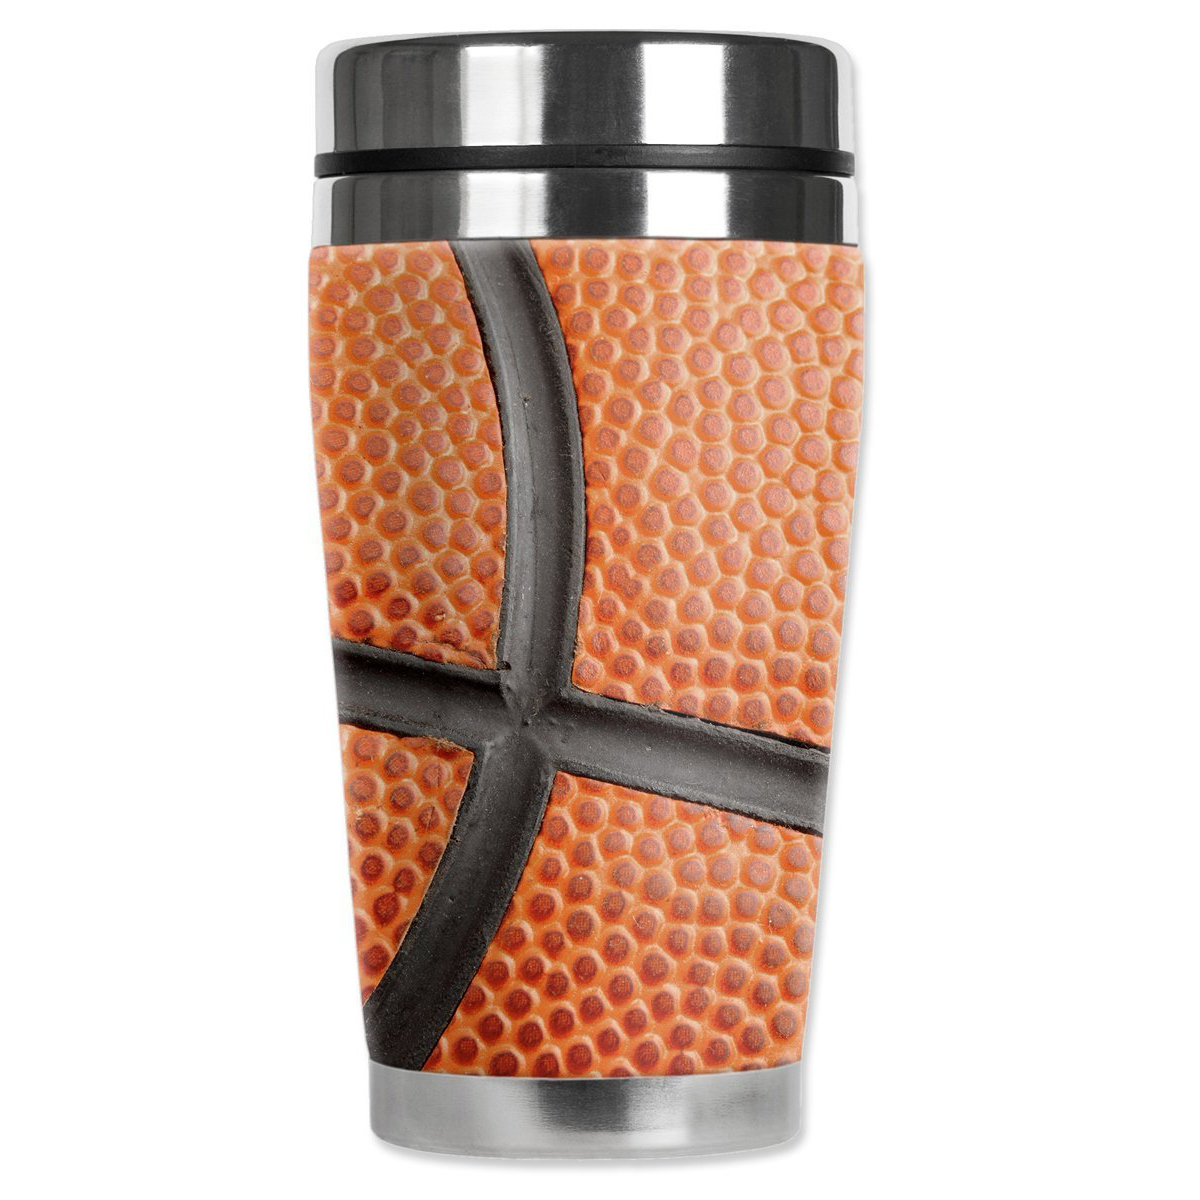 Basketball Coffee Mugs For Sports Fans Lovers Top 10 Best Gift Ideas